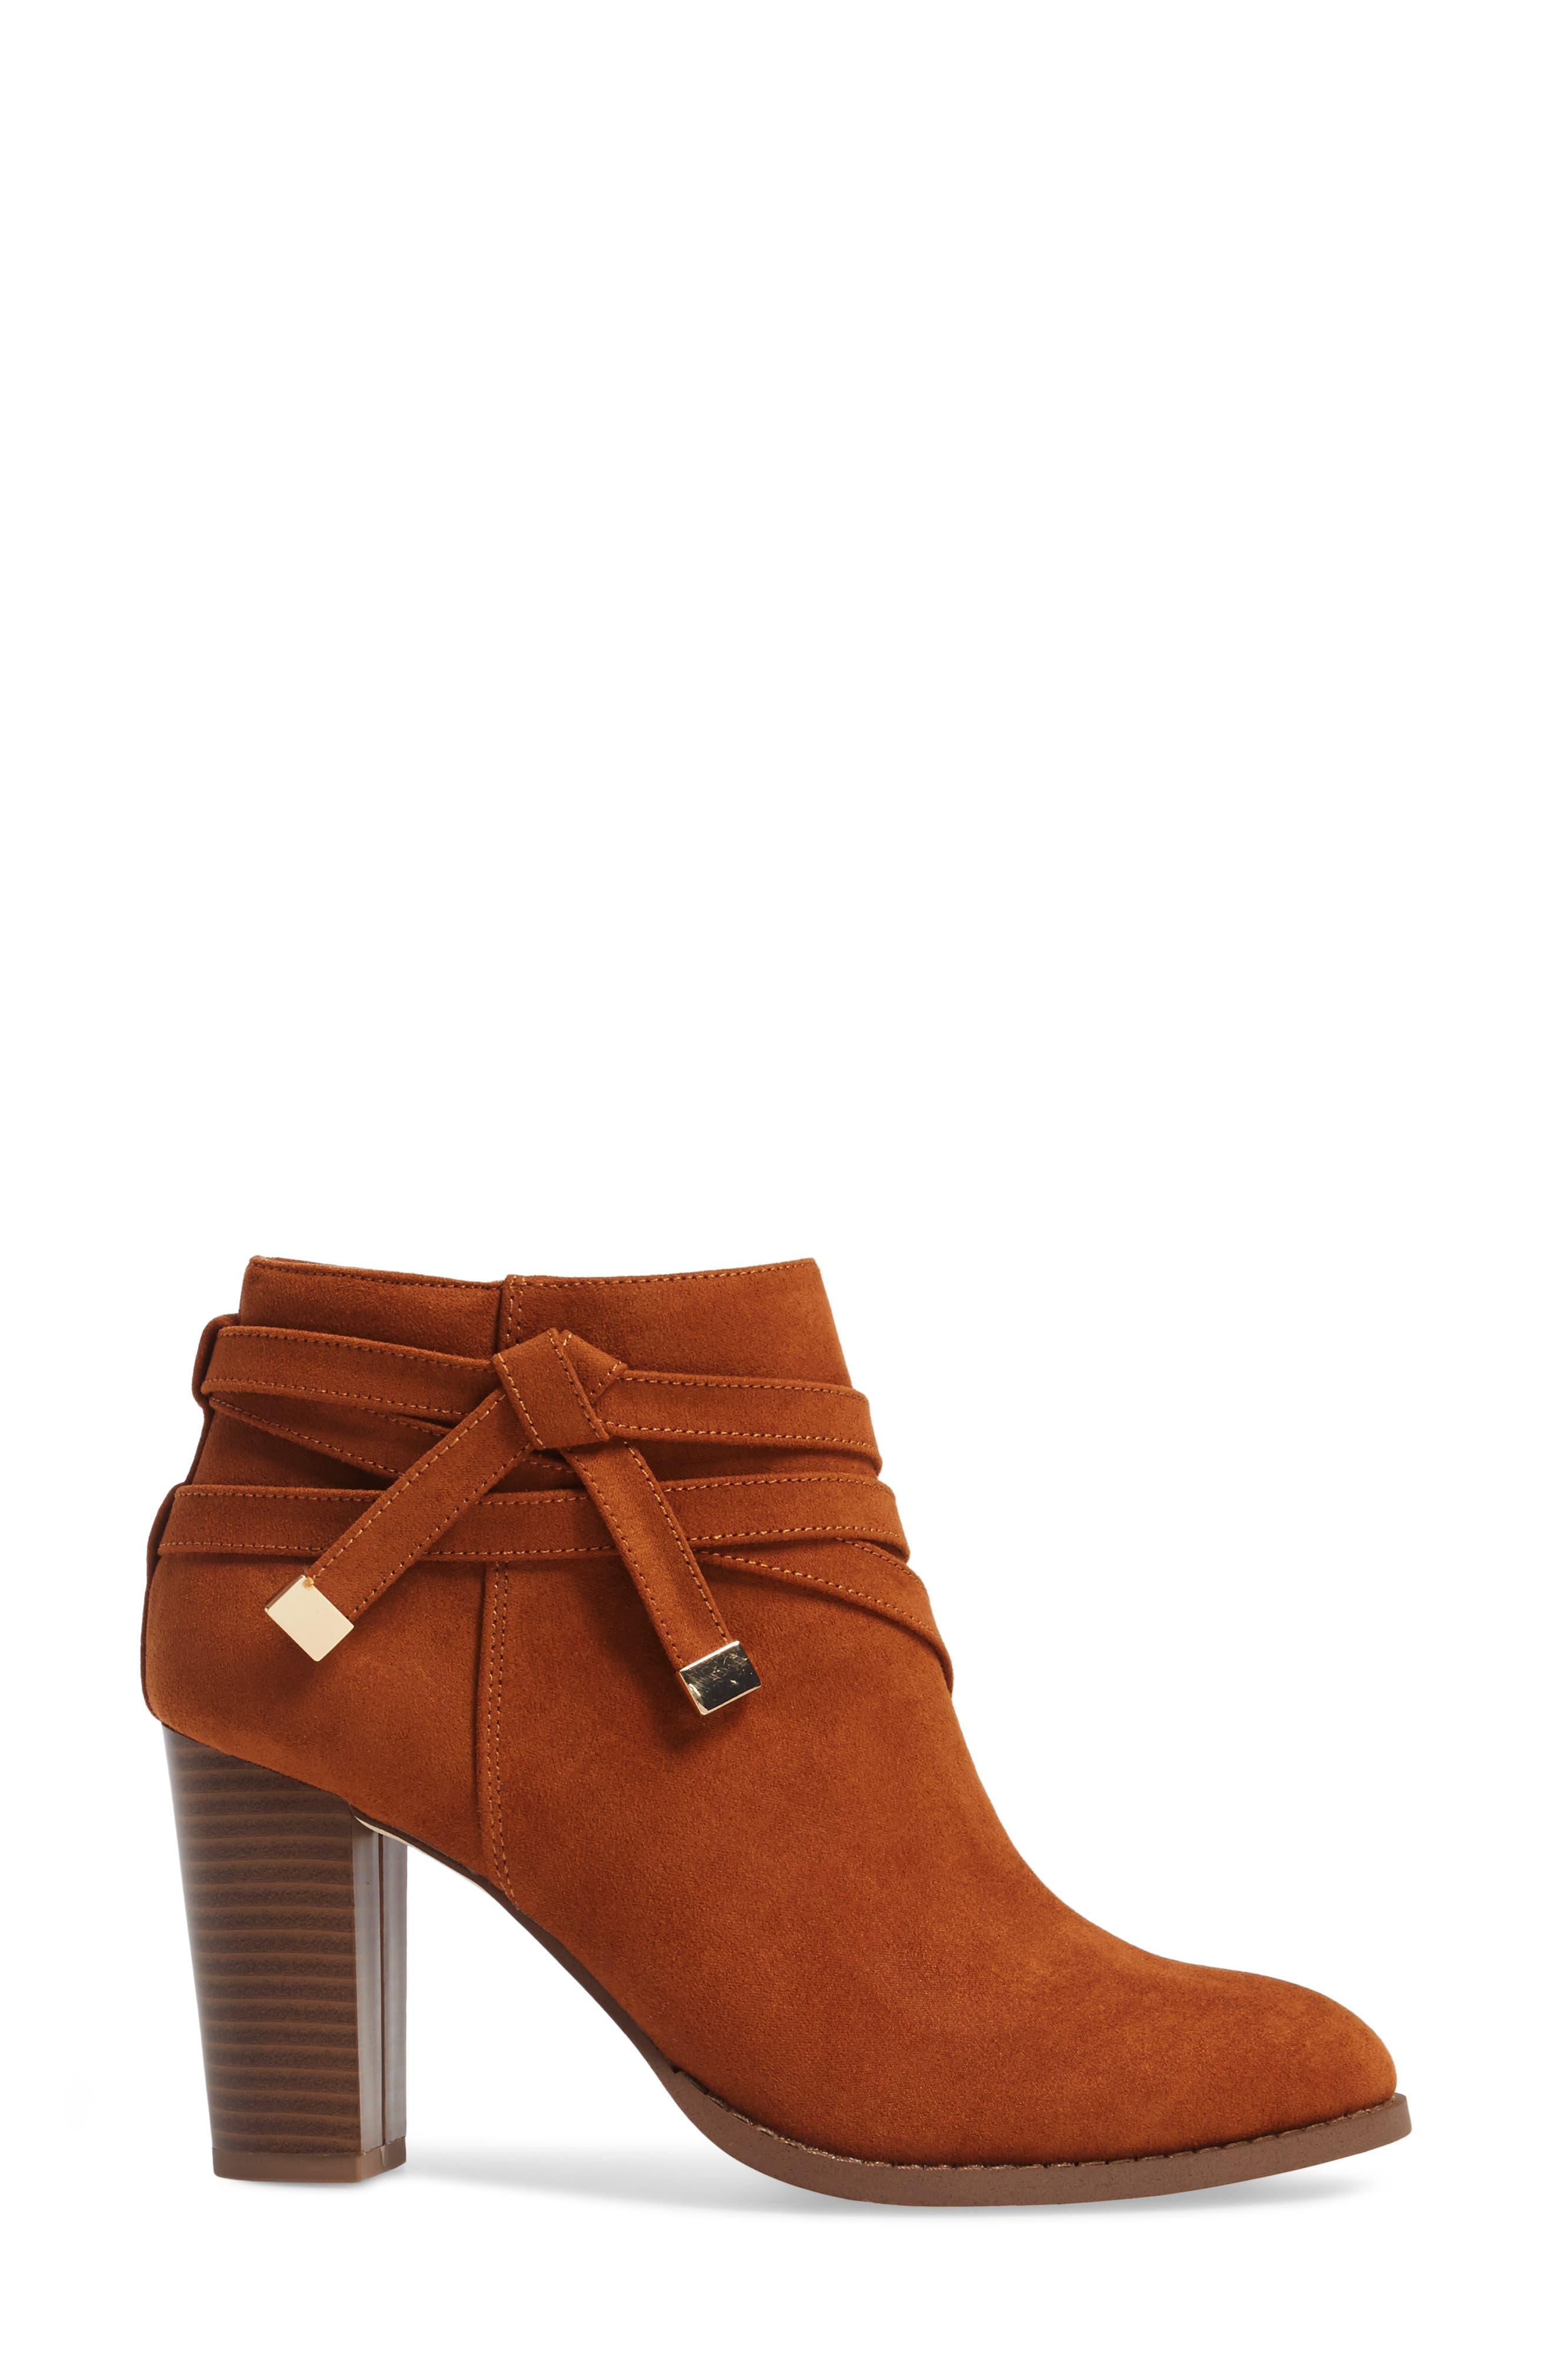 Renly Bootie,                             Alternate thumbnail 3, color,                             Tan Suede